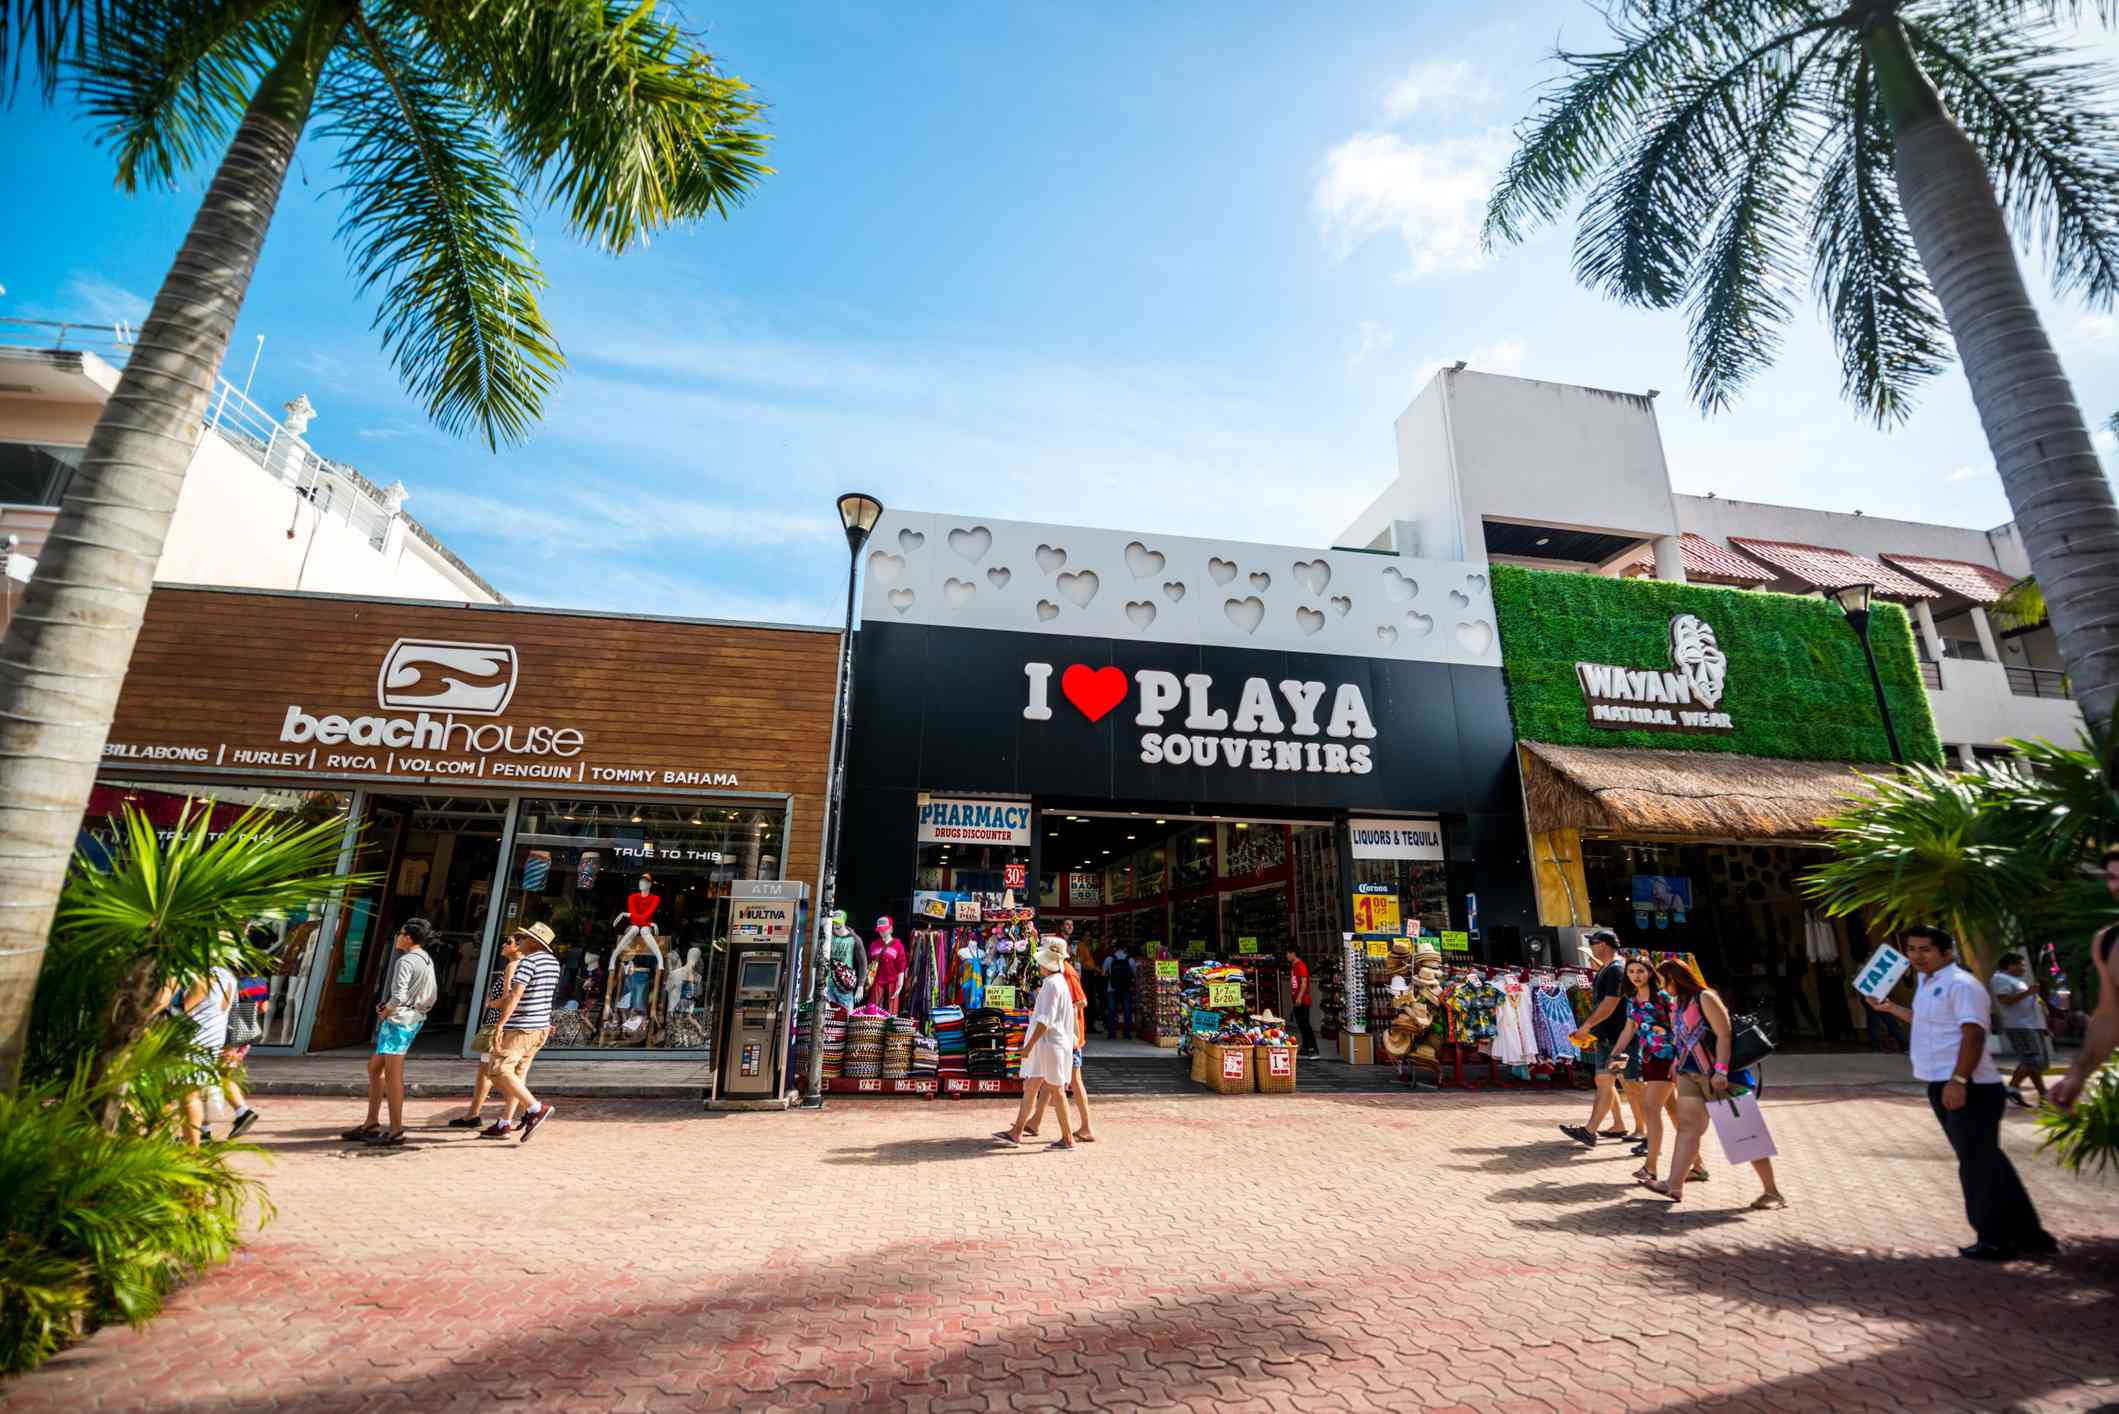 Tourists exploring famous shopping street in Playa Del Carmen - 5th Avenue, Mexico